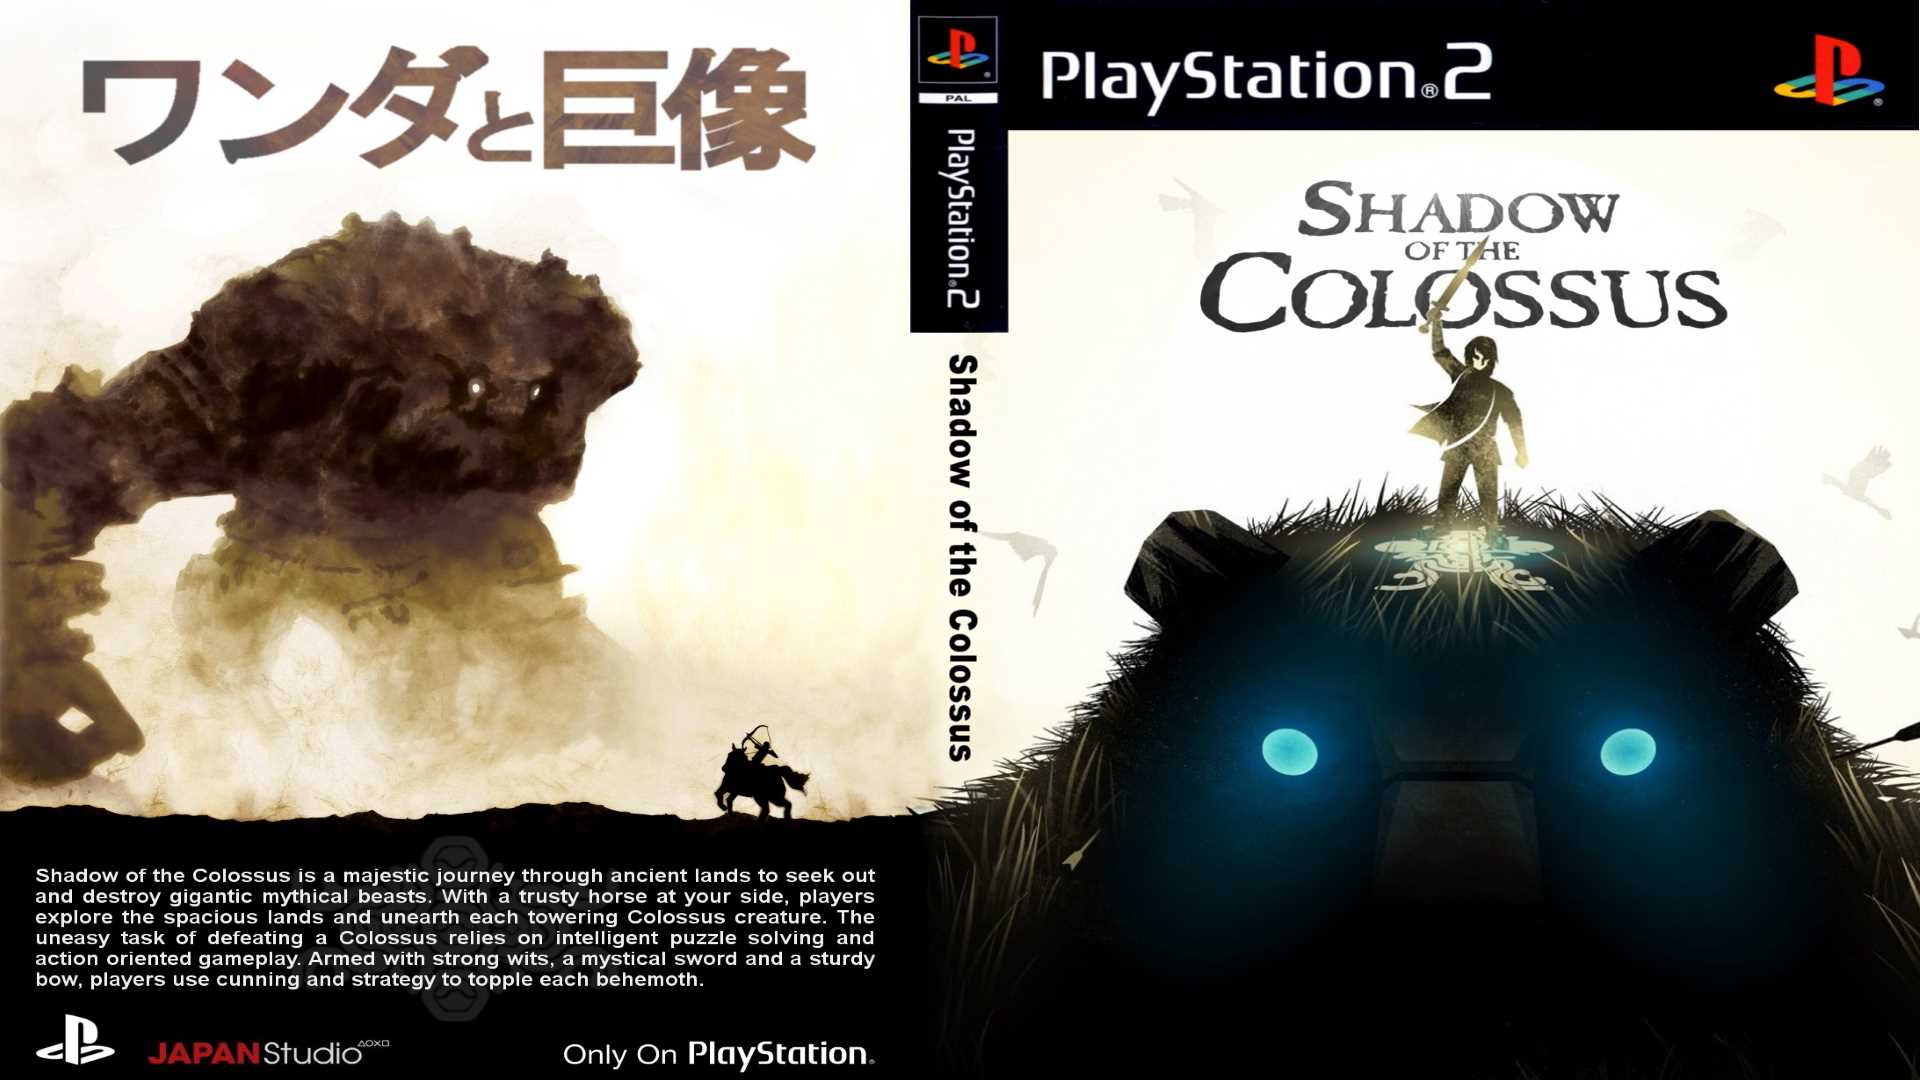 Wunderbare Jahre oder Retro Teil 2 - Shadow of the Colossus PlayStation 2 Cover